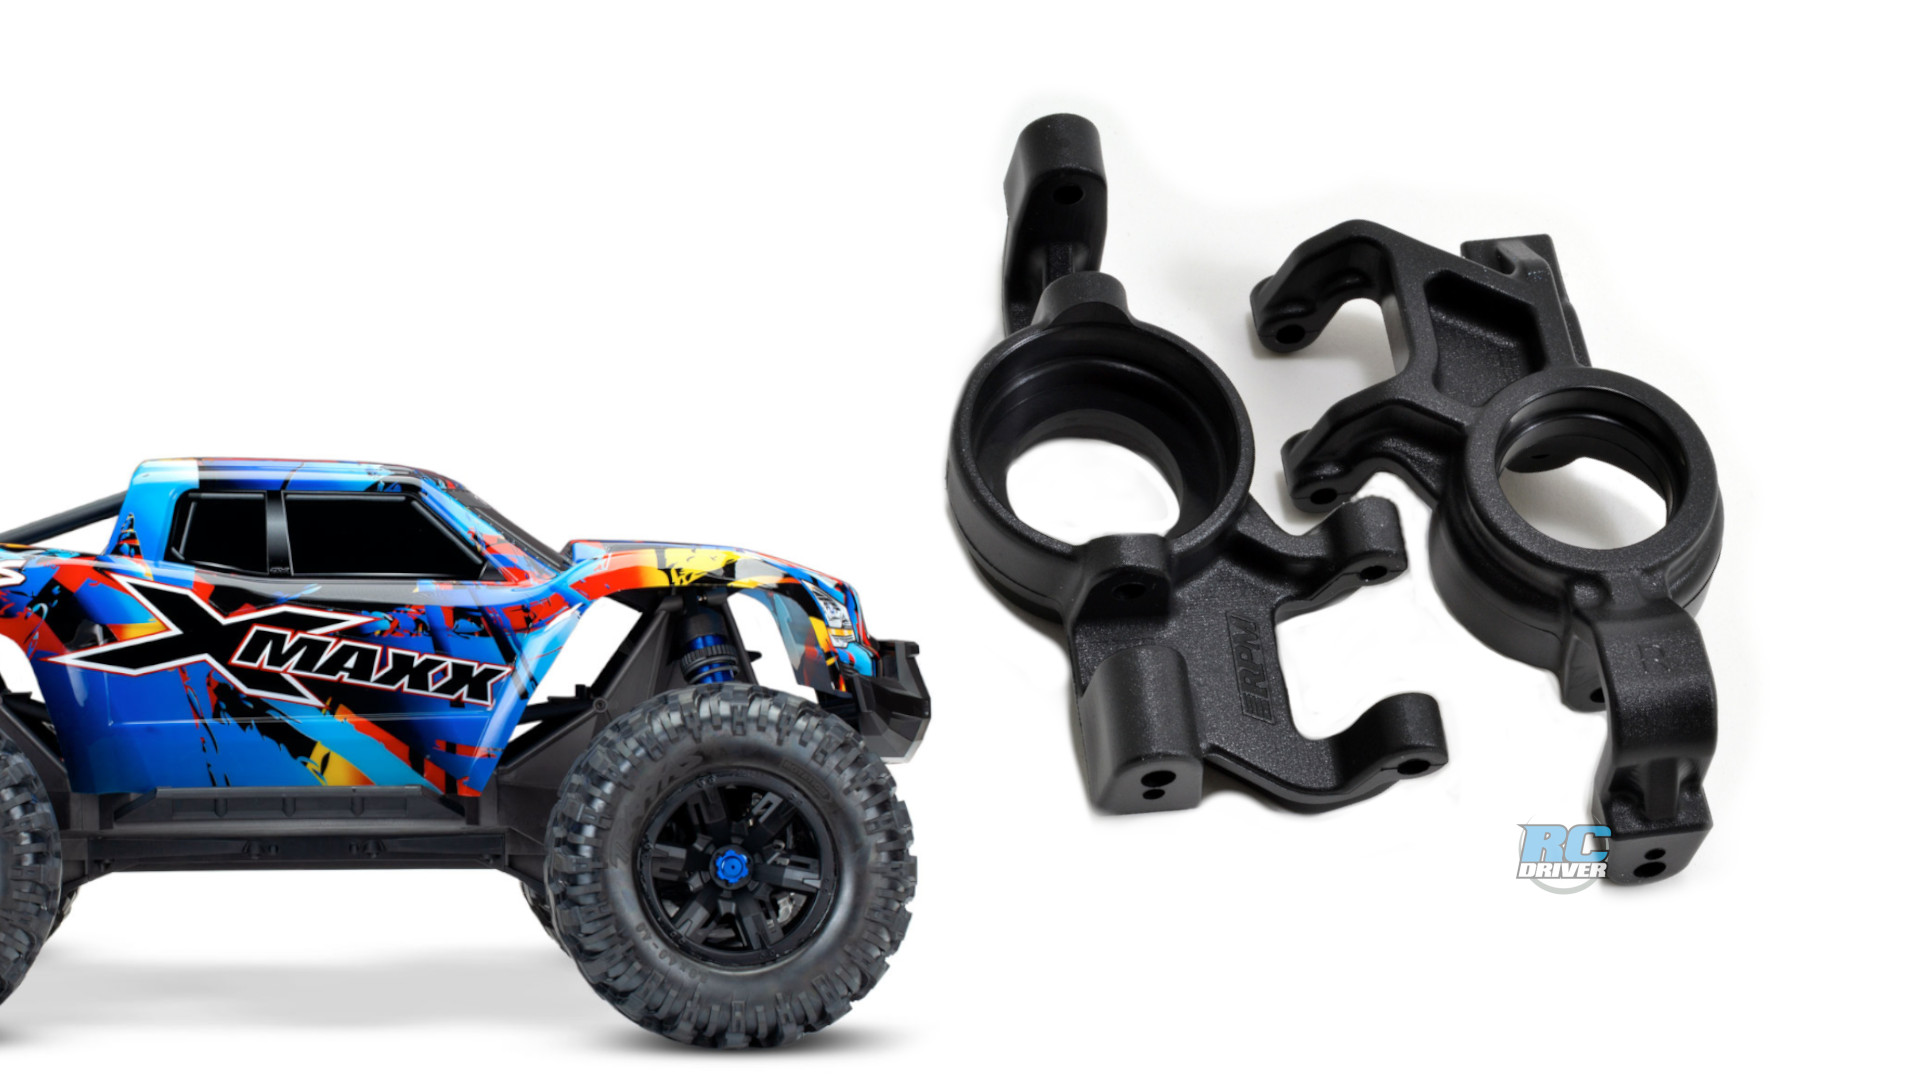 RPM Oversized Front Axle Carriers for the Traxxas X-Maxx